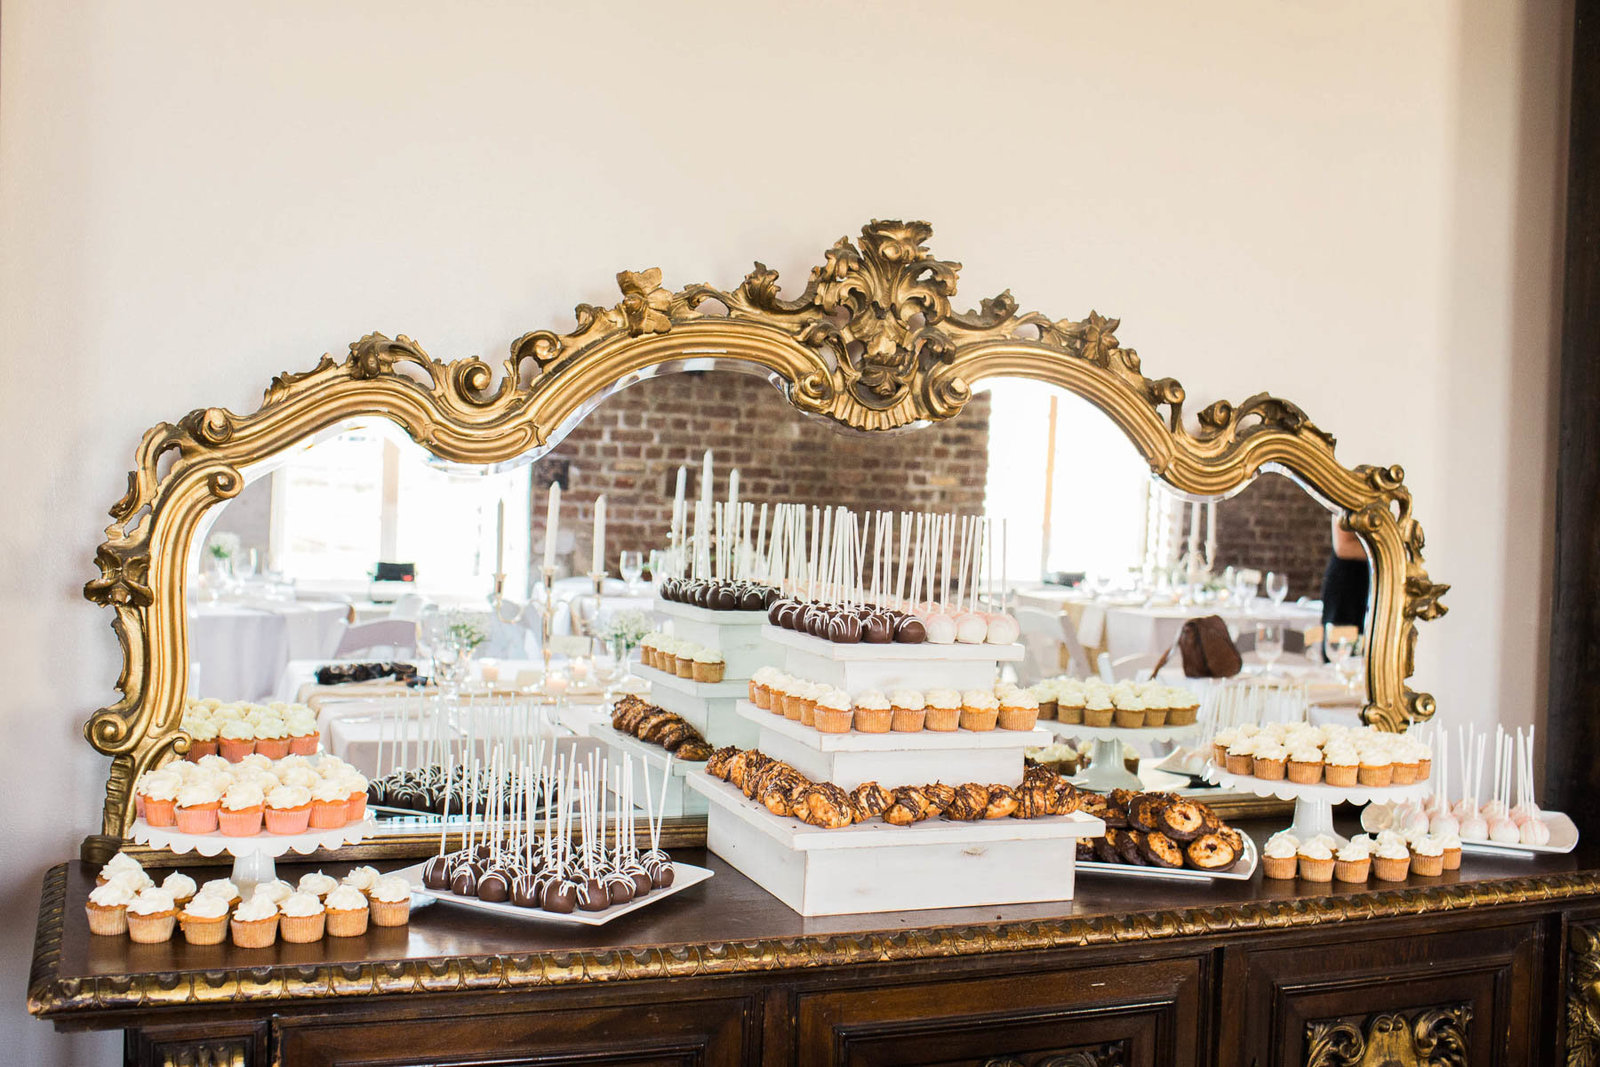 Baked goods are laid out on dessert table, Rice Mill Building, Charleston, South Carolina